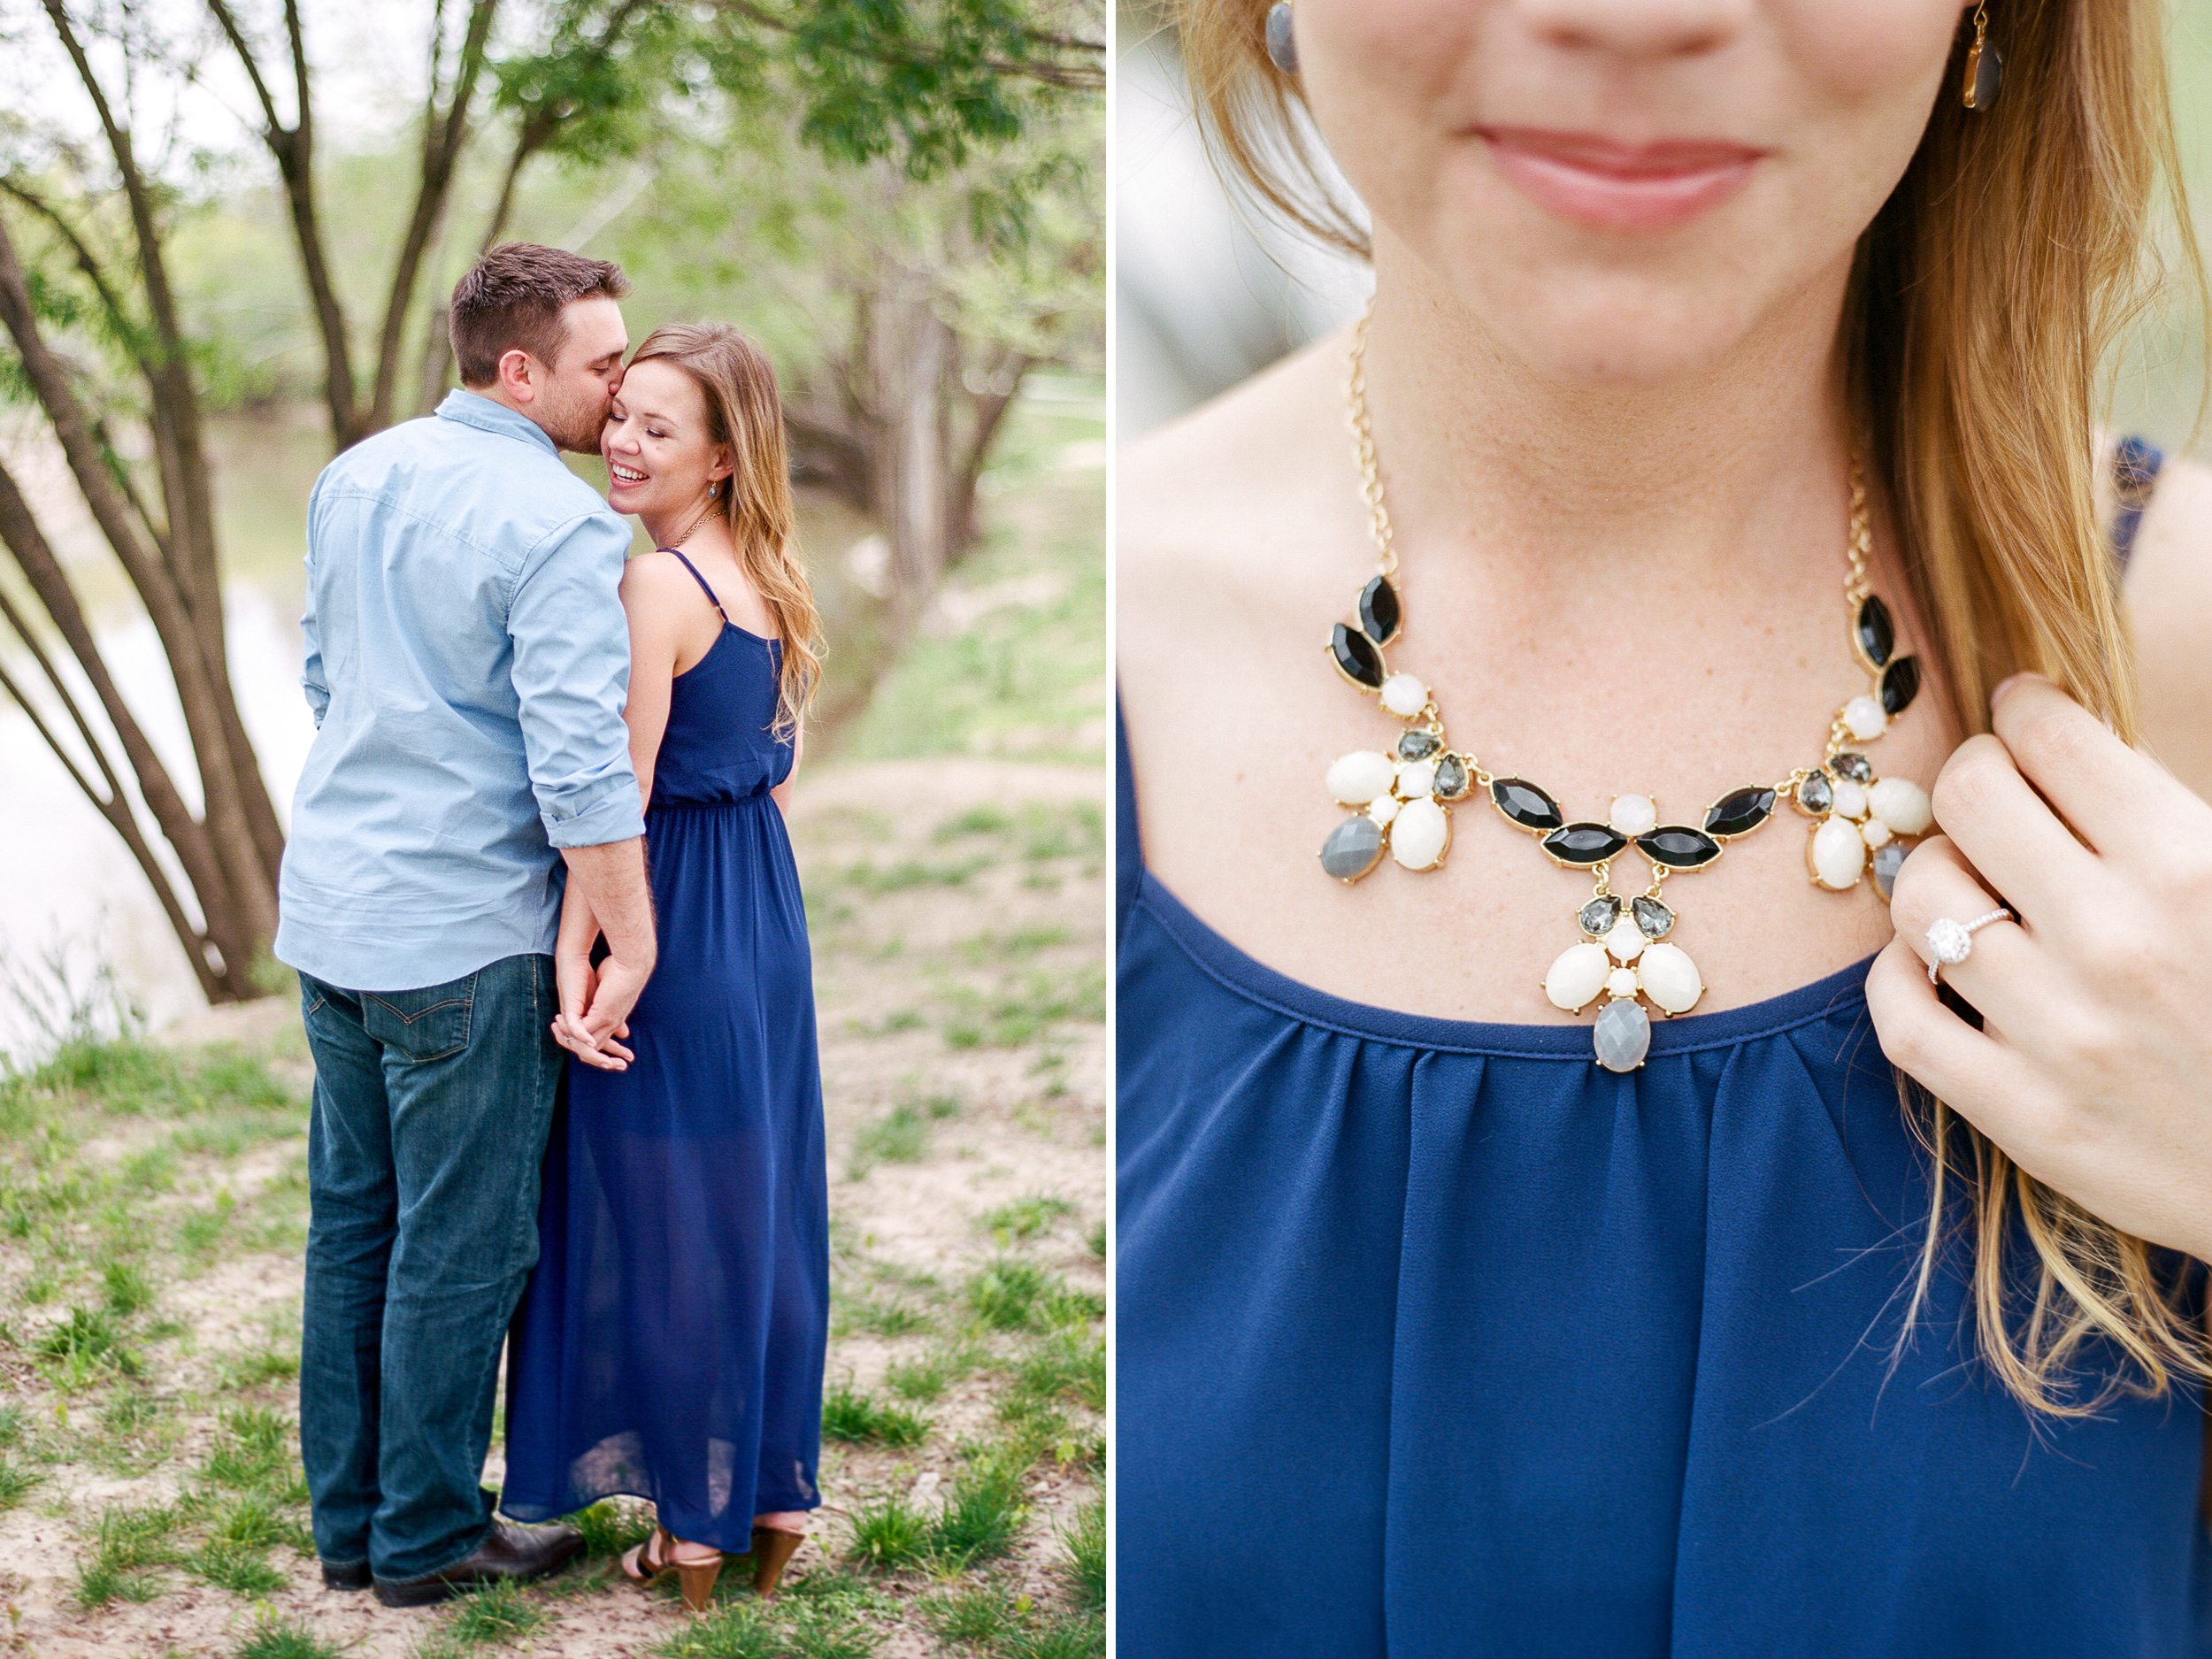 Dana-Fernandez-Photography-Houston-Wedding-Photographer-Engagements-Film-Destination-Texas-1.jpg